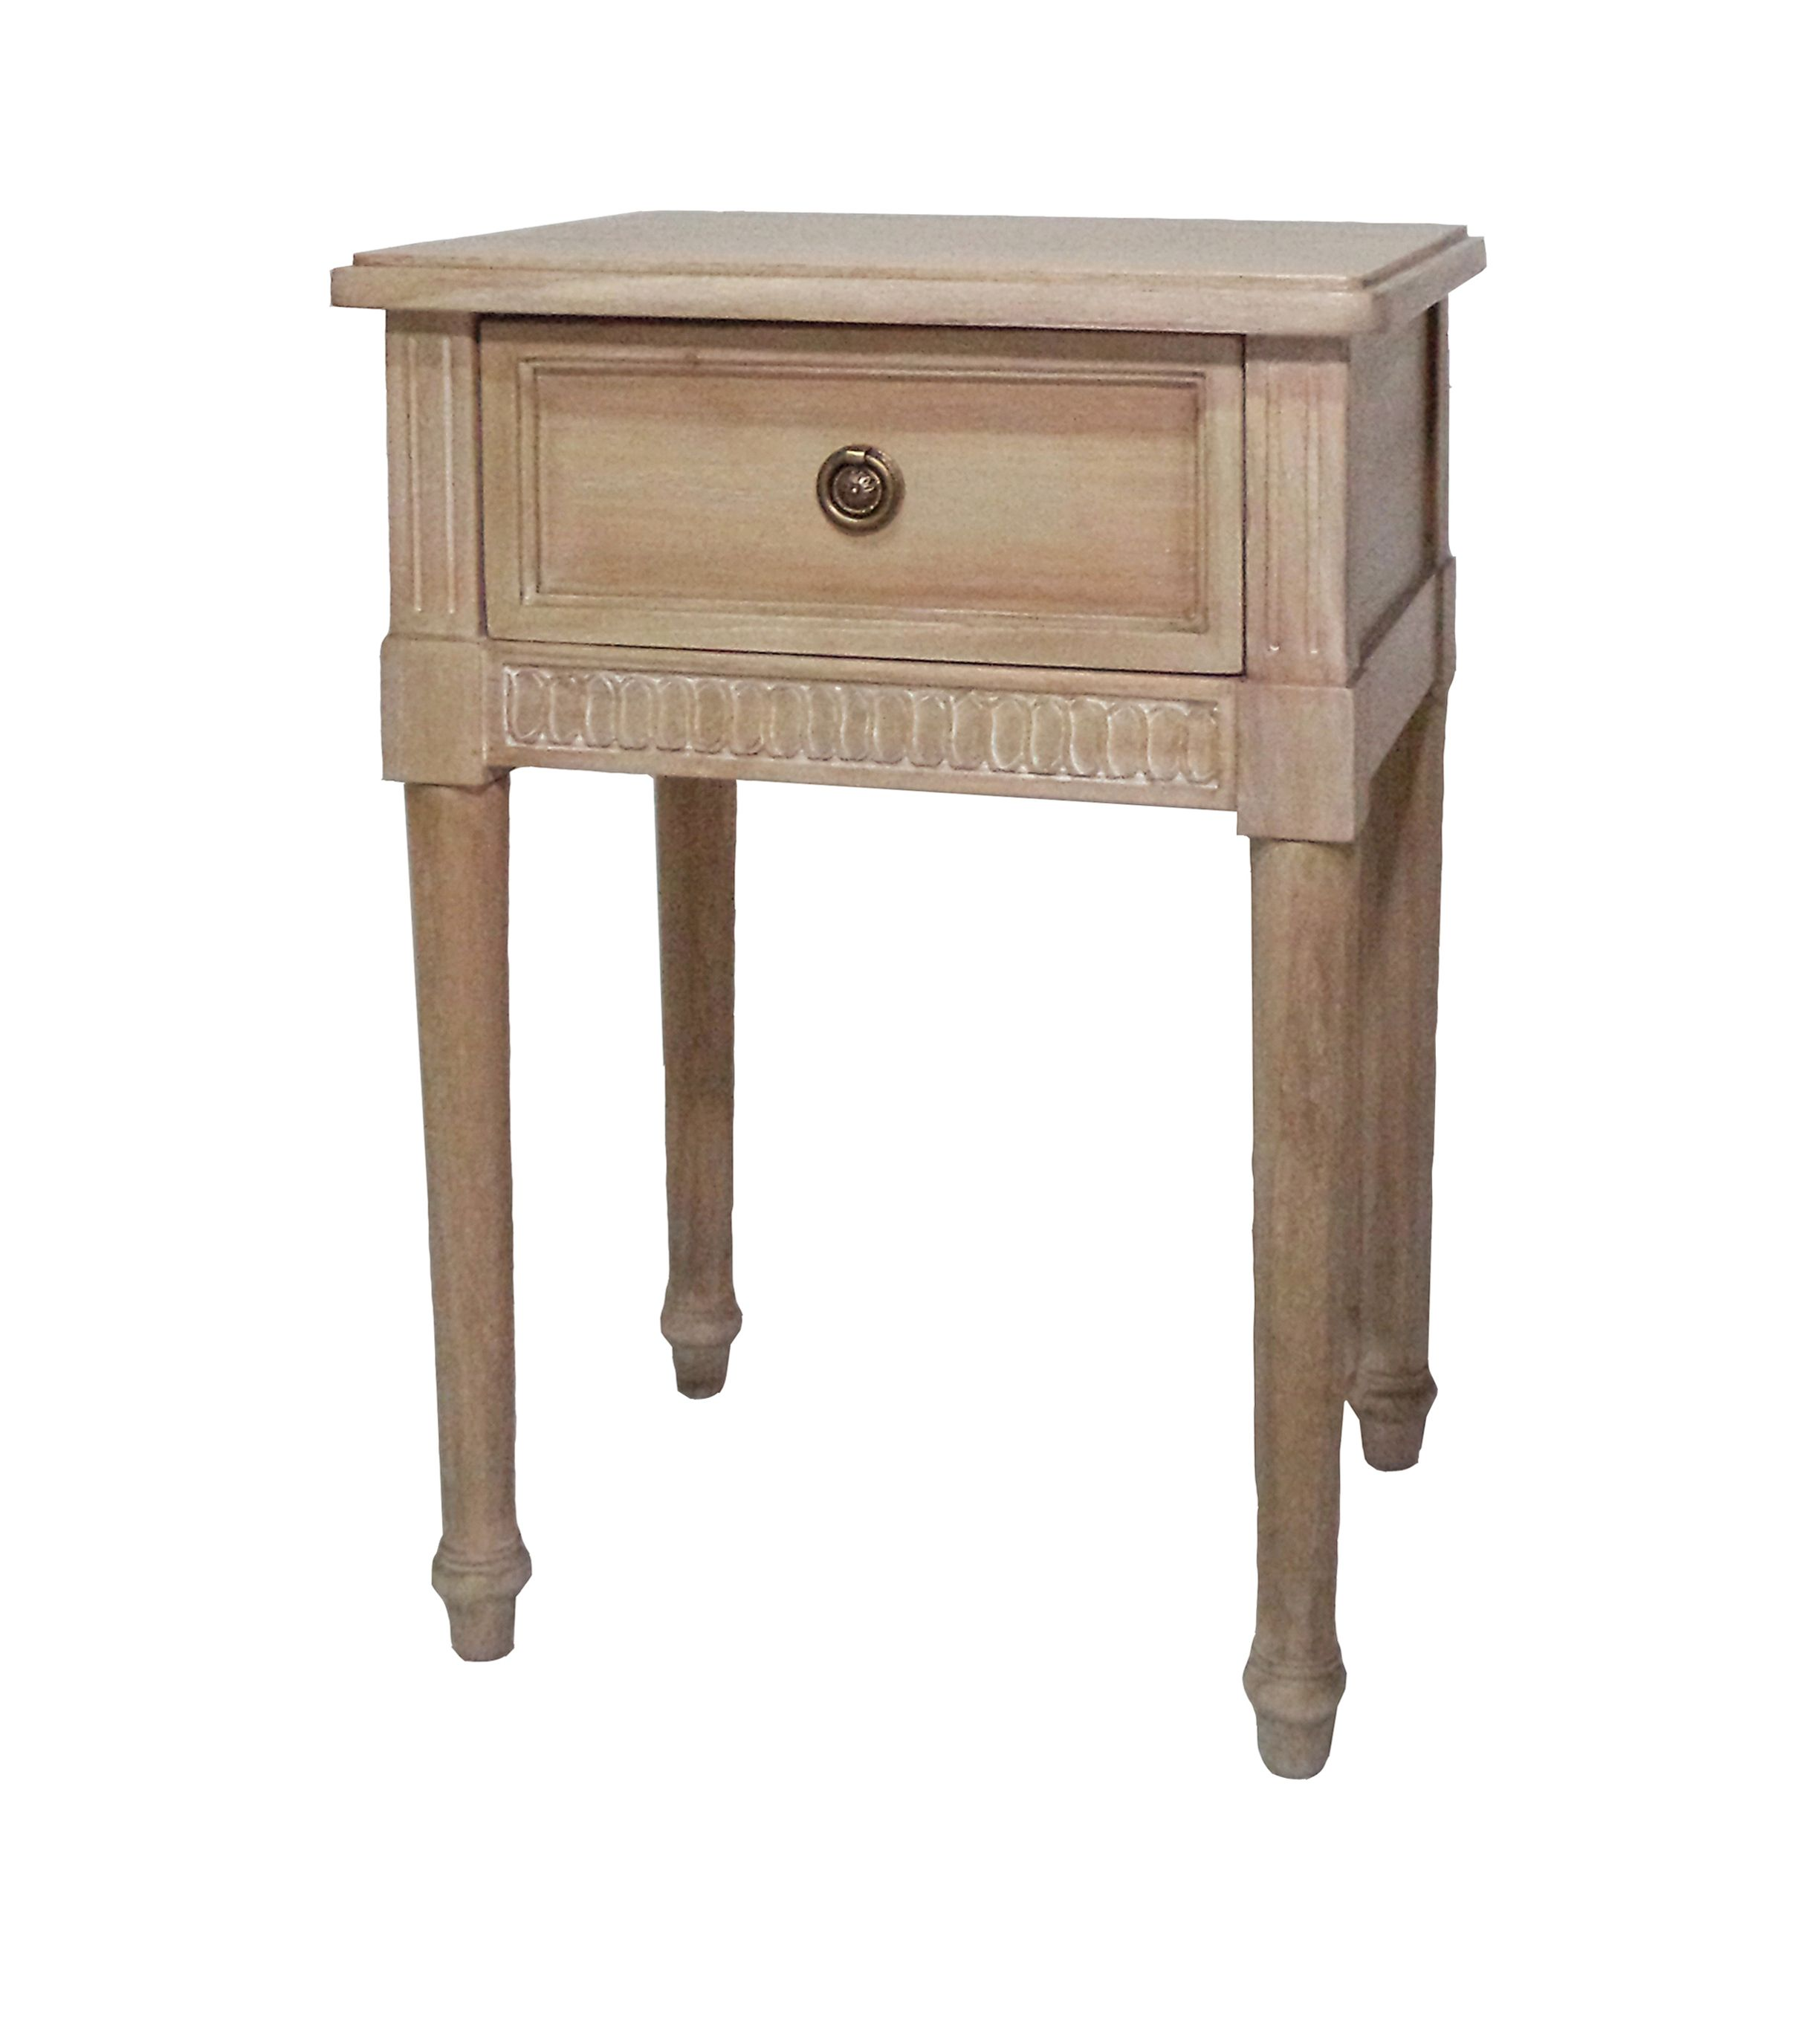 Shabby Shop Online Shabby Chic Cabinet Shop For Cheap Furniture And Save Online